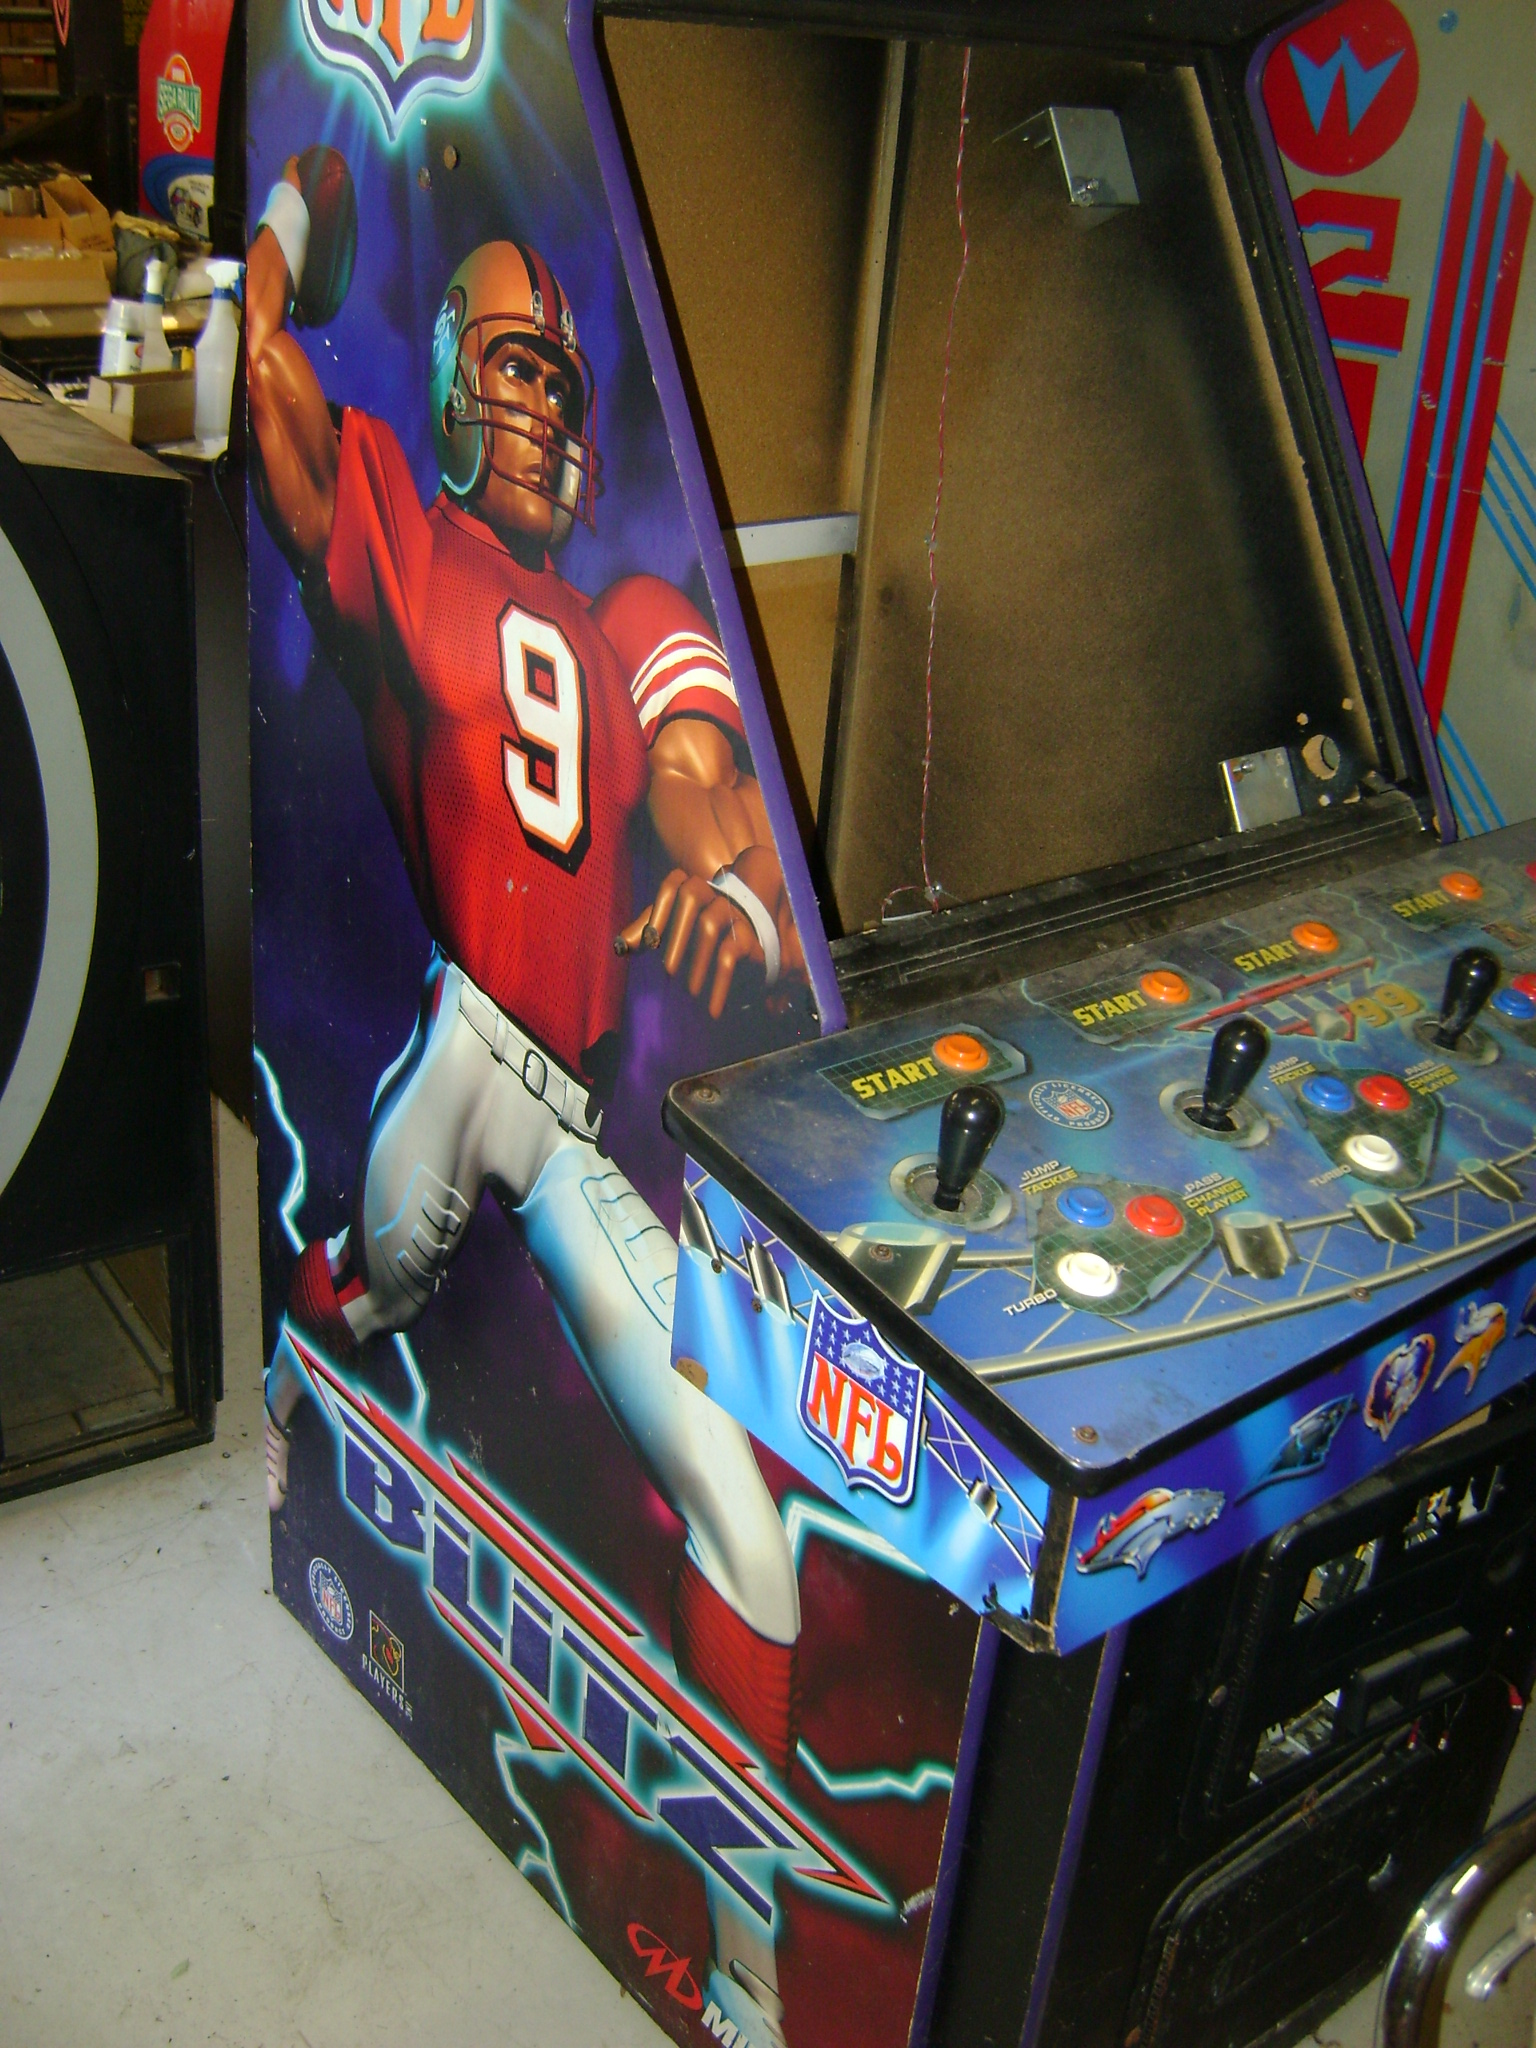 nfl blitz arcade machine for sale